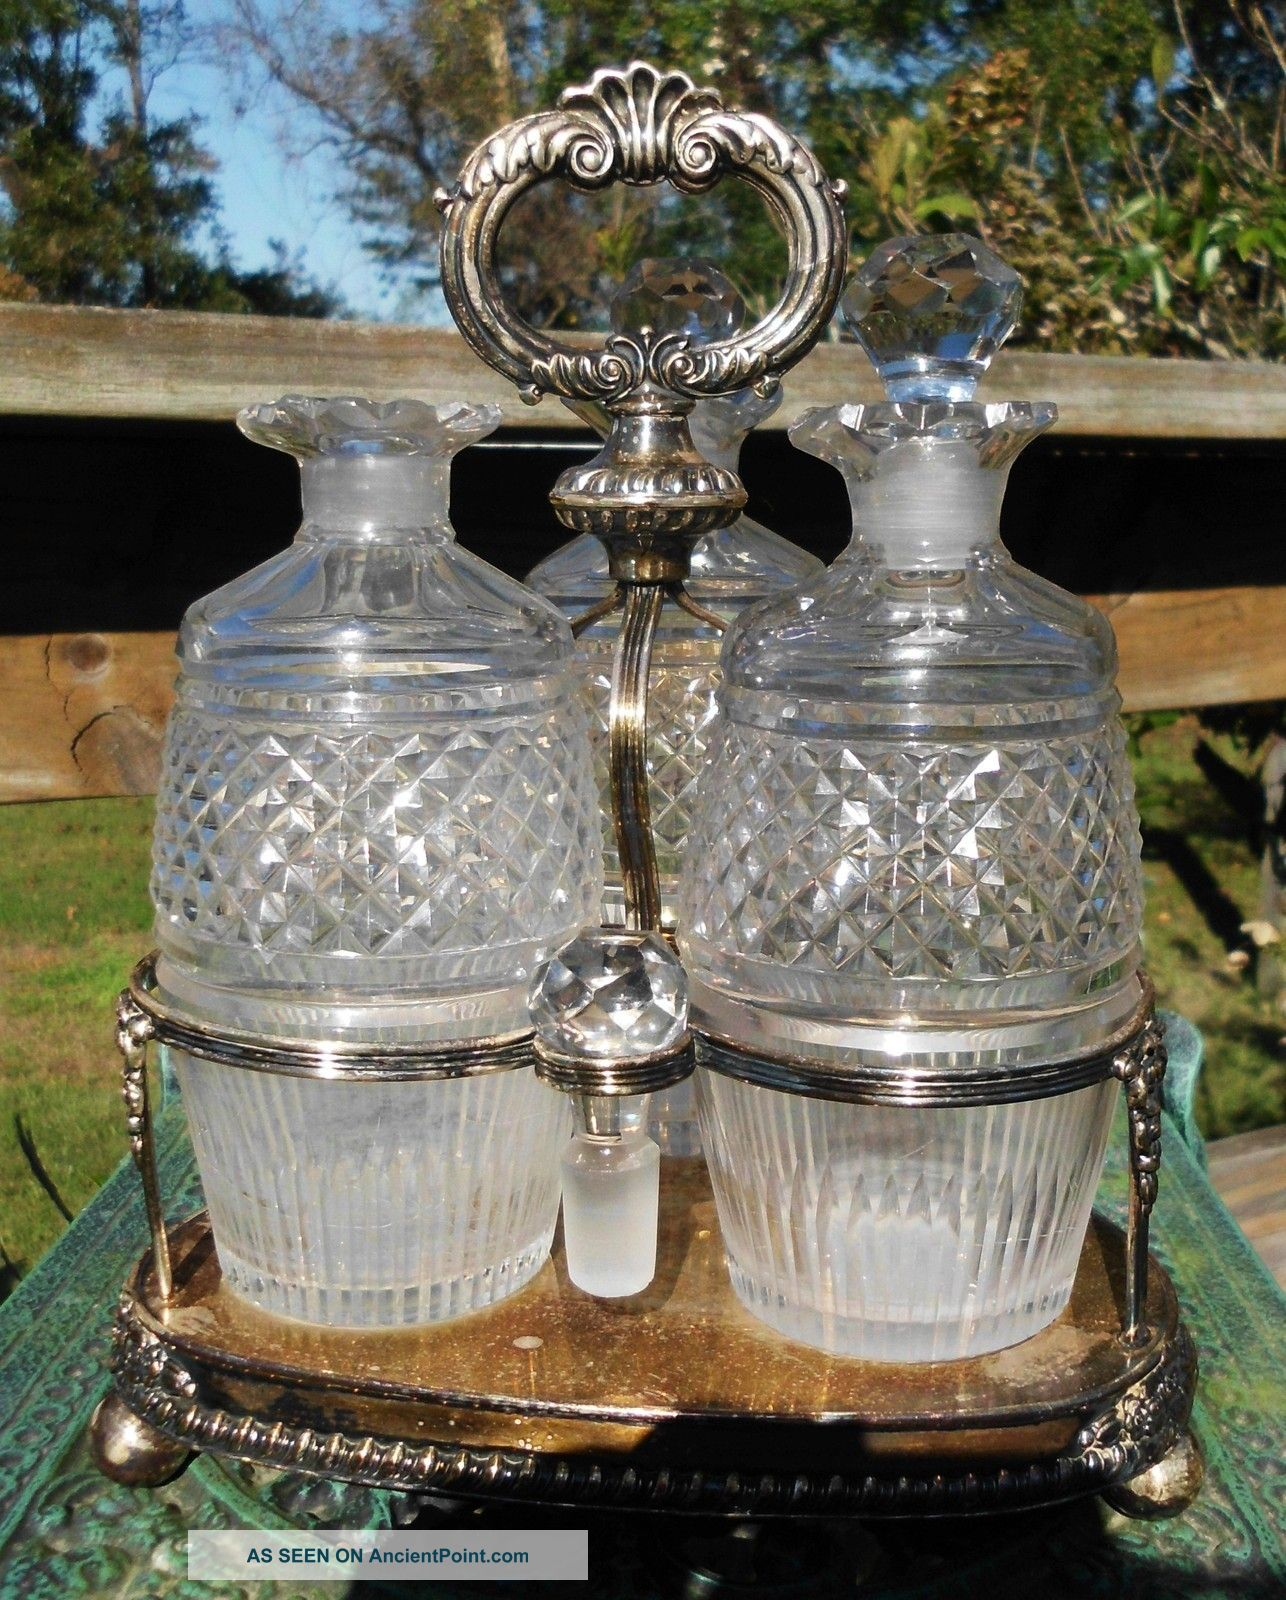 Vintage Decanters Tantalus W/ Silver Plated Holder Stand Bottles, Decanters & Flasks photo